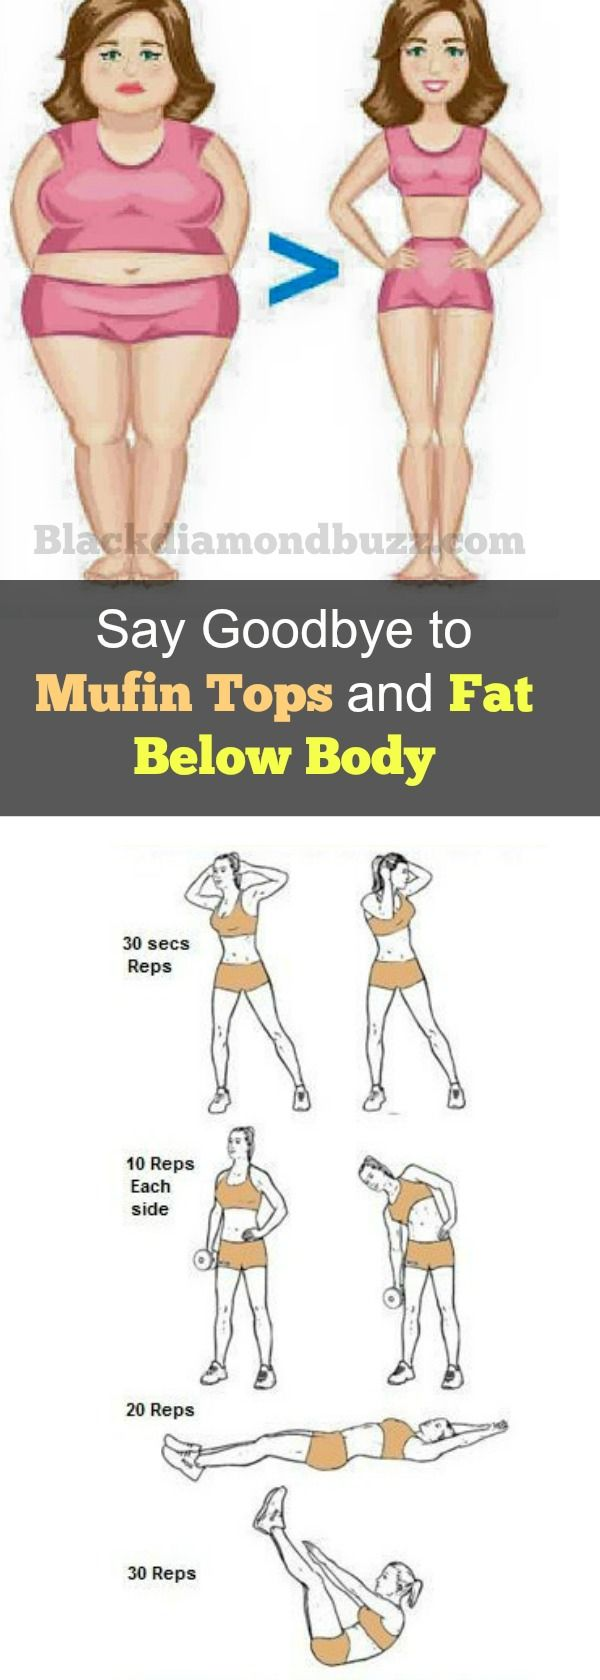 Say goodbye to muffin top, bra bulge, back fat, and Love handle